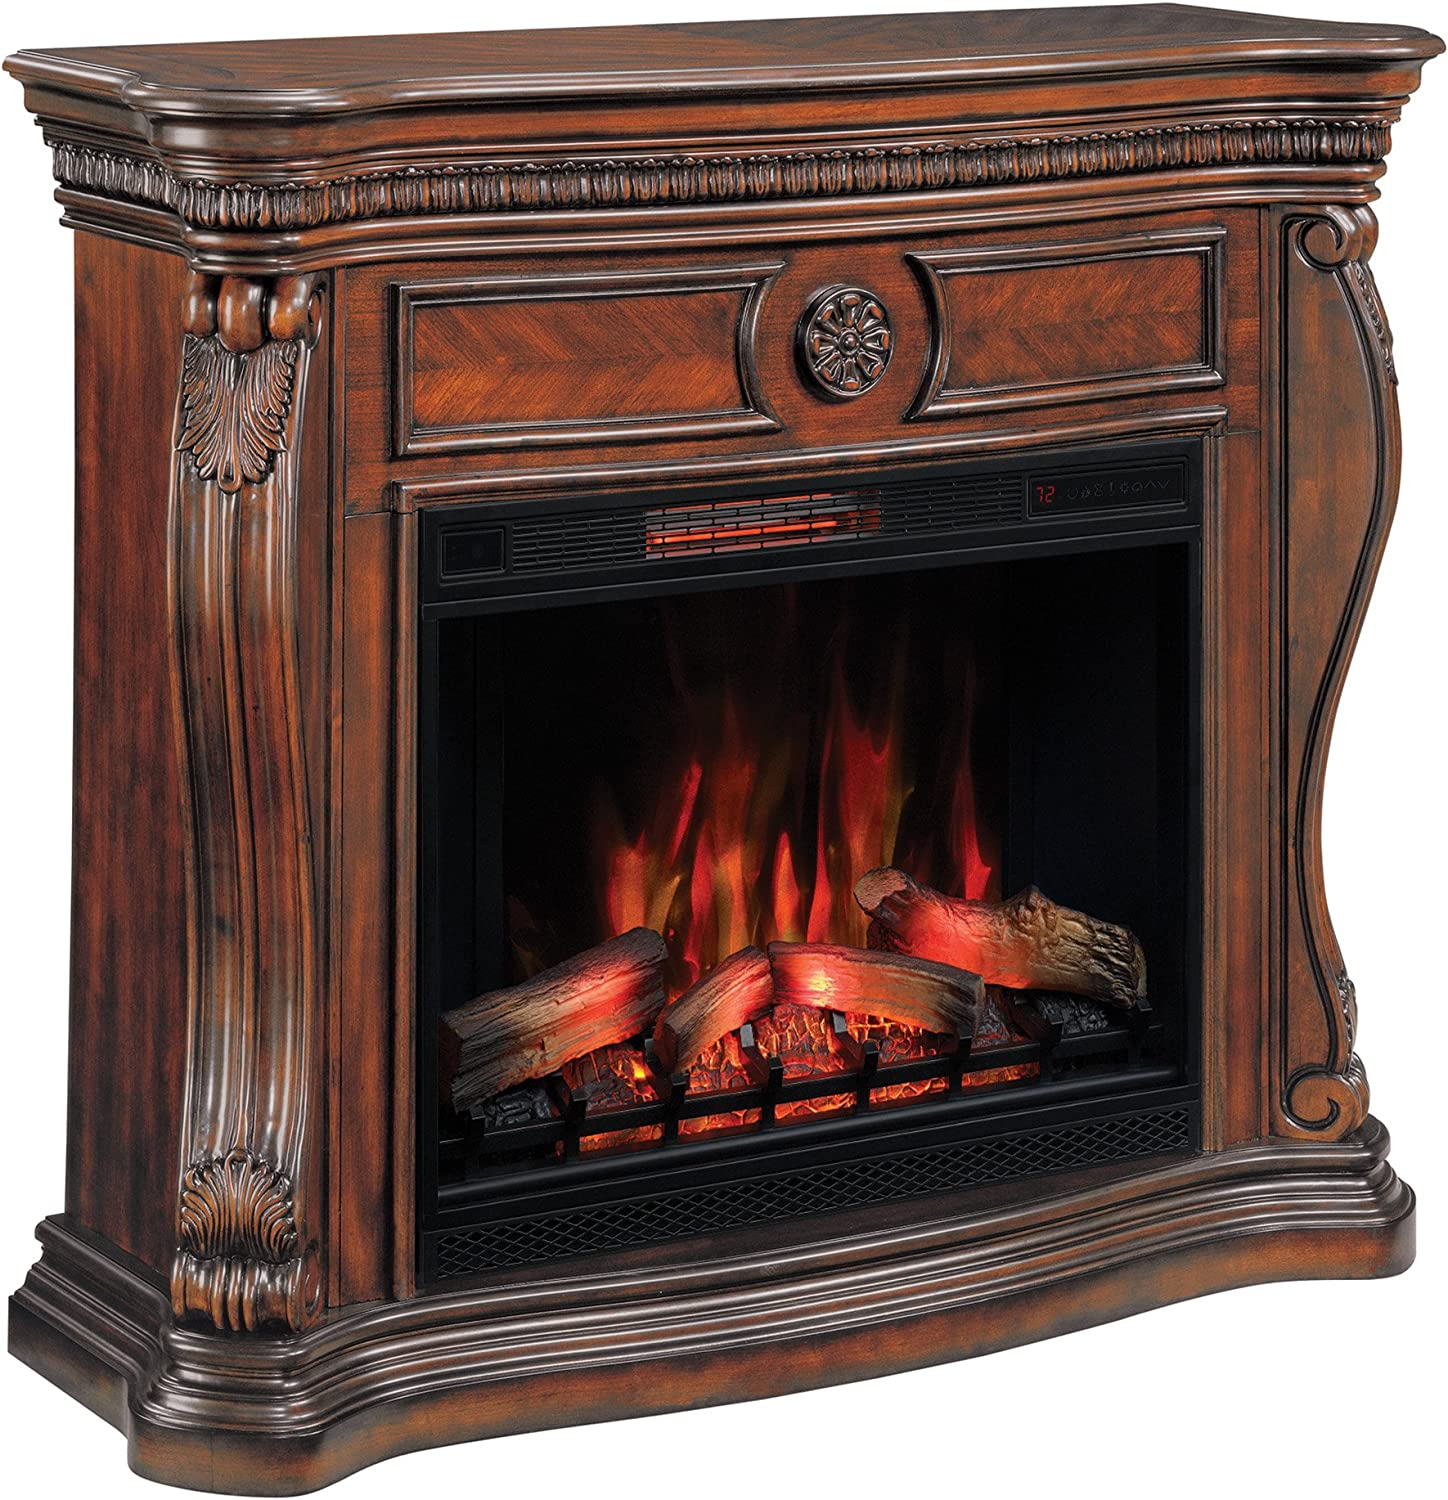 MantelEmpire Separately Sold Classicflame Lexington Wall Fireplace Cherryelectric tCrxhBsQdo